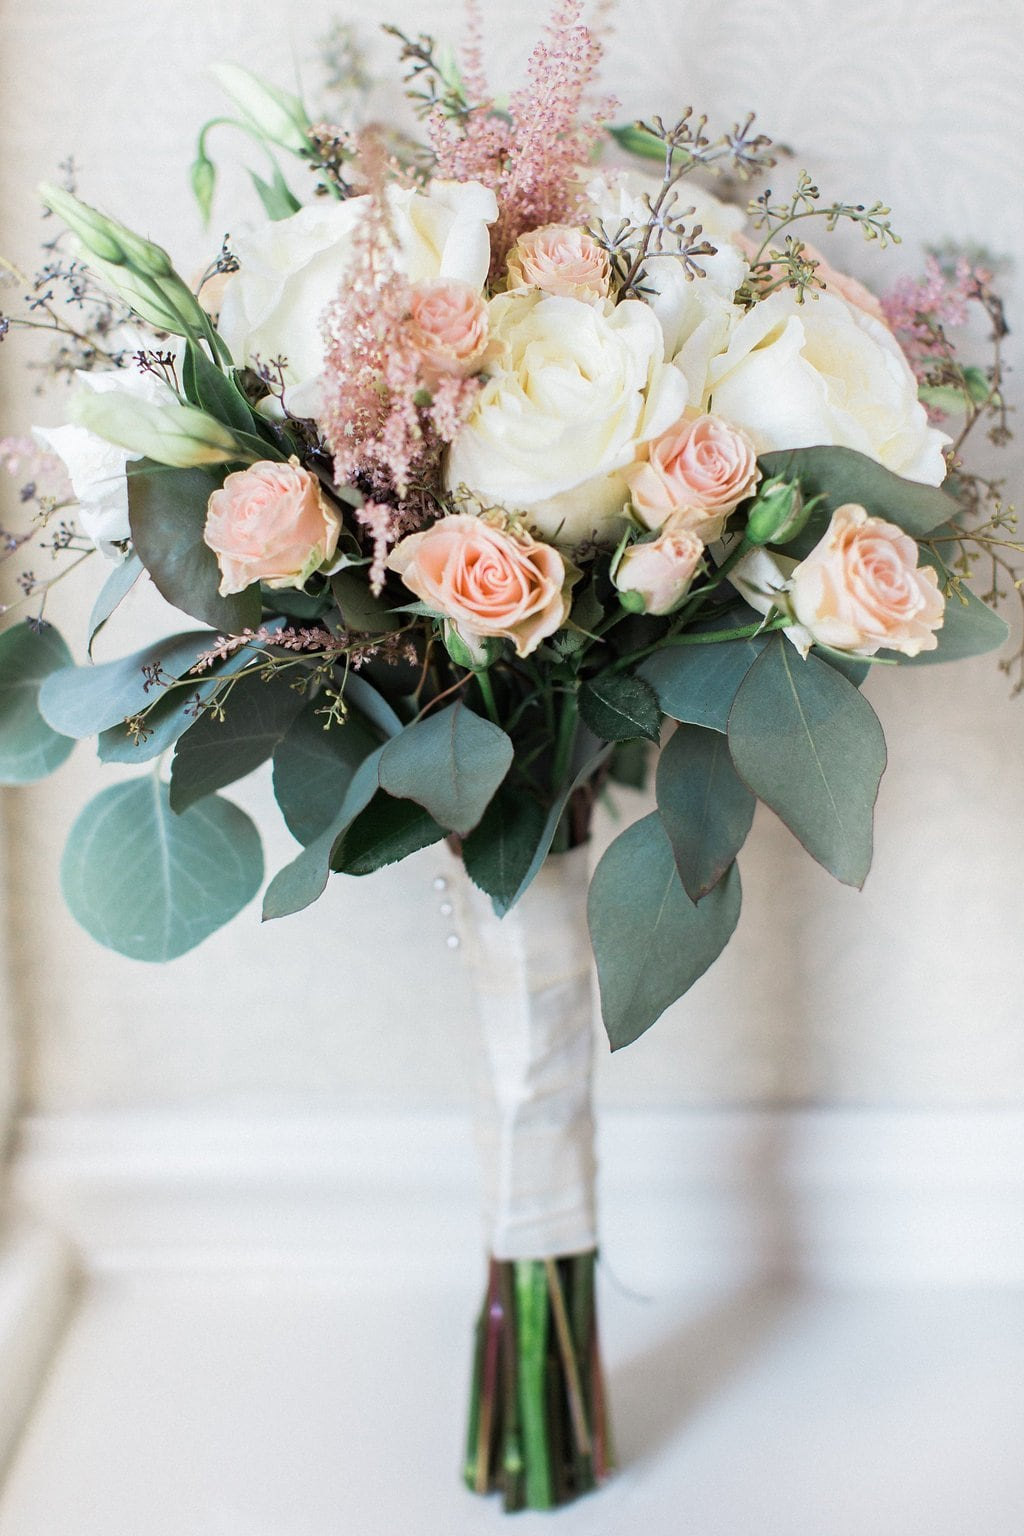 Bride's bouquet from Blumengarten of blush pink, white, and green at the Omni William Penn - 1920's inspired wedding Grand Concourse